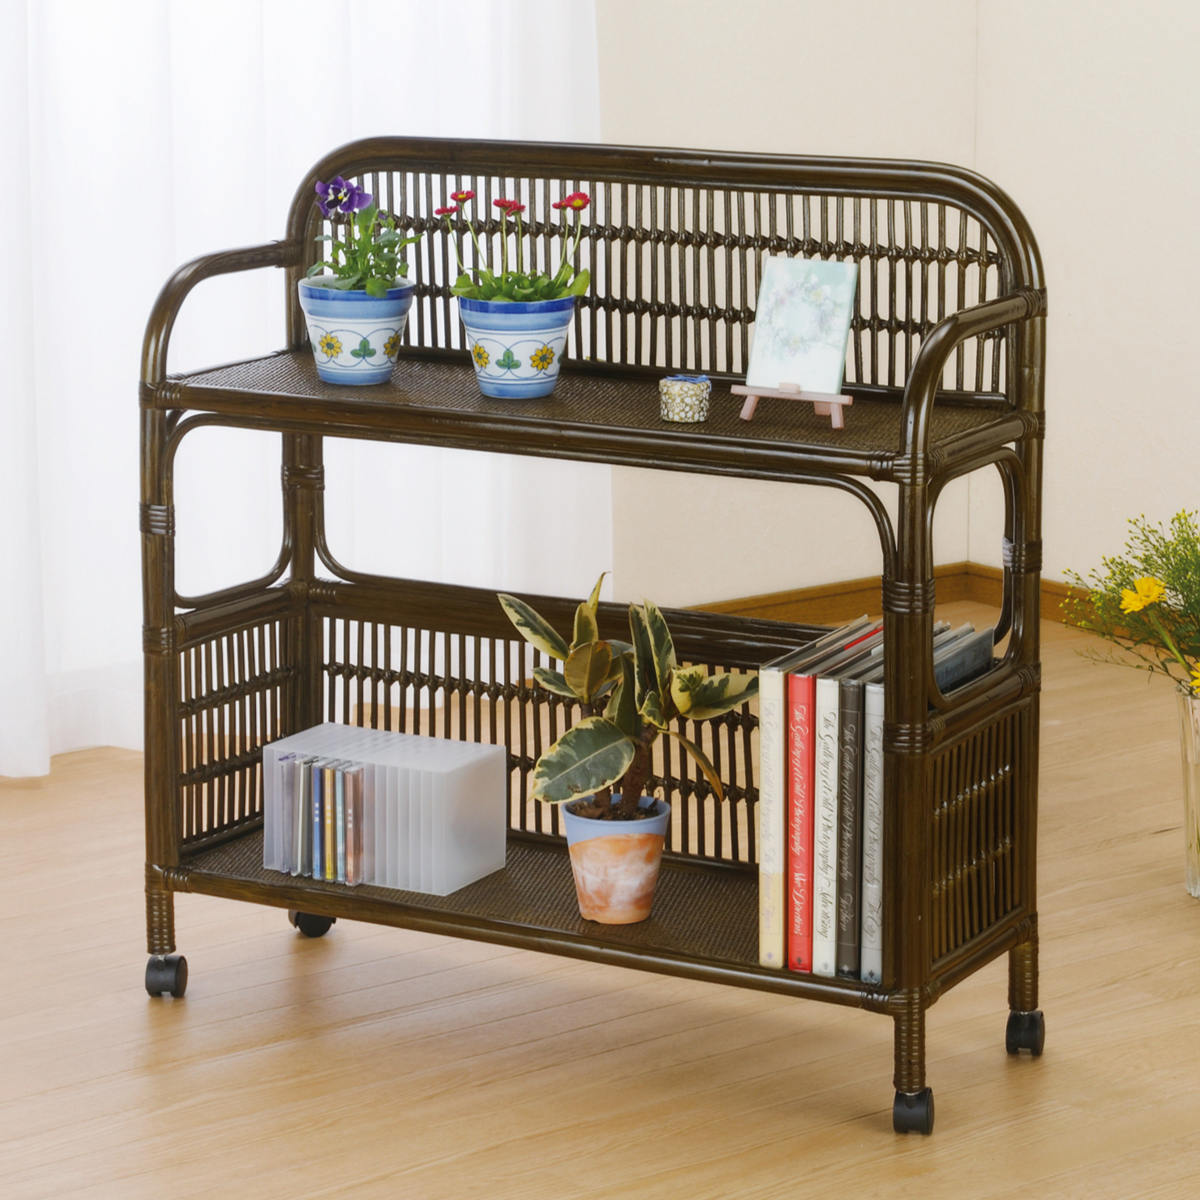 Wicker Latin Shelves Bookshelf Flower Rack With Casters Asian 05P06May15